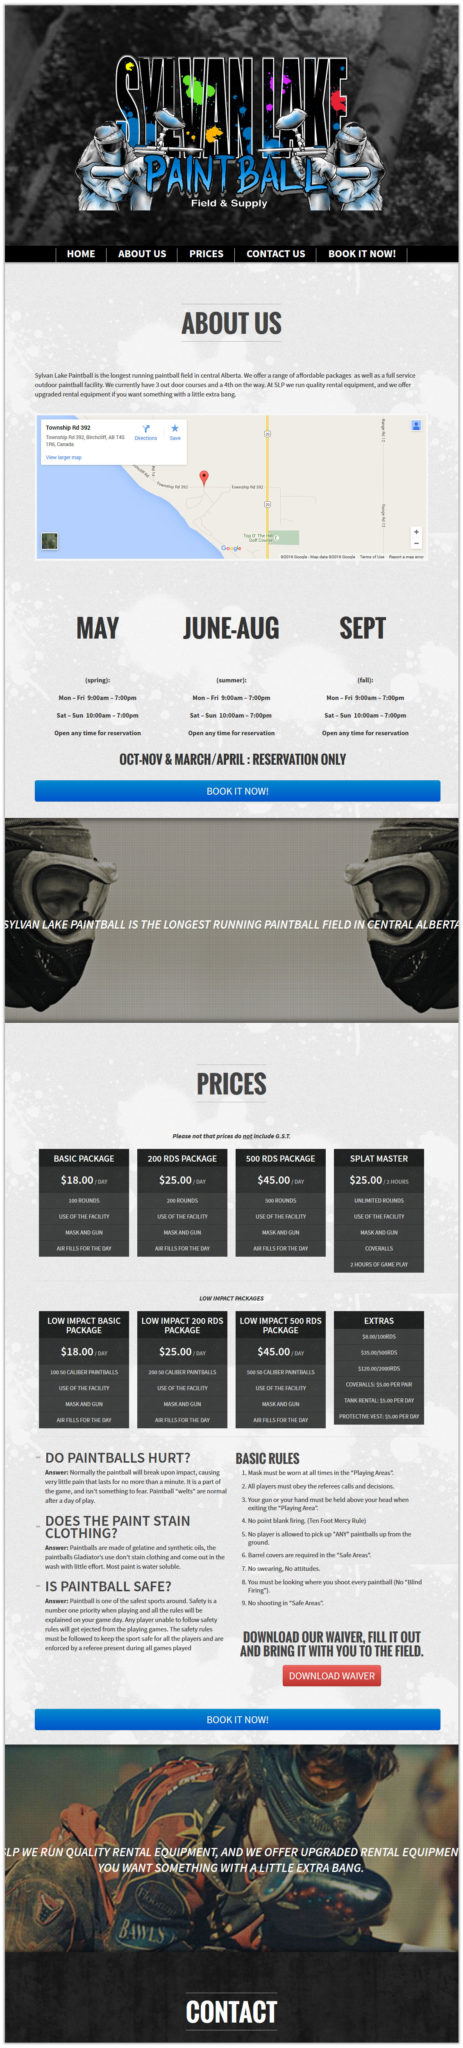 Sylvan lake paintball website design page layout